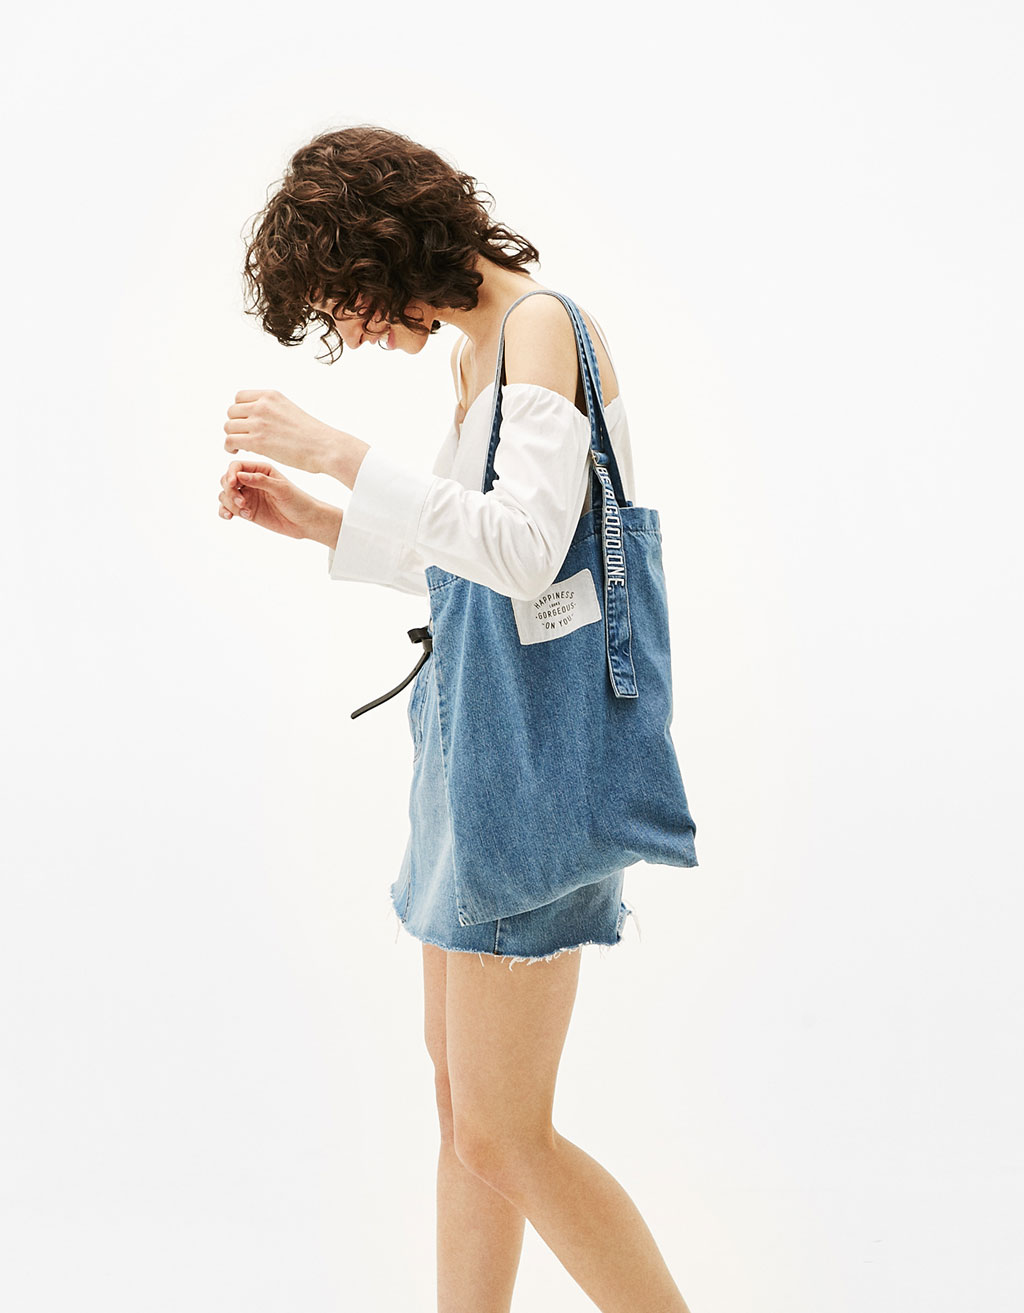 Denim shopping bag